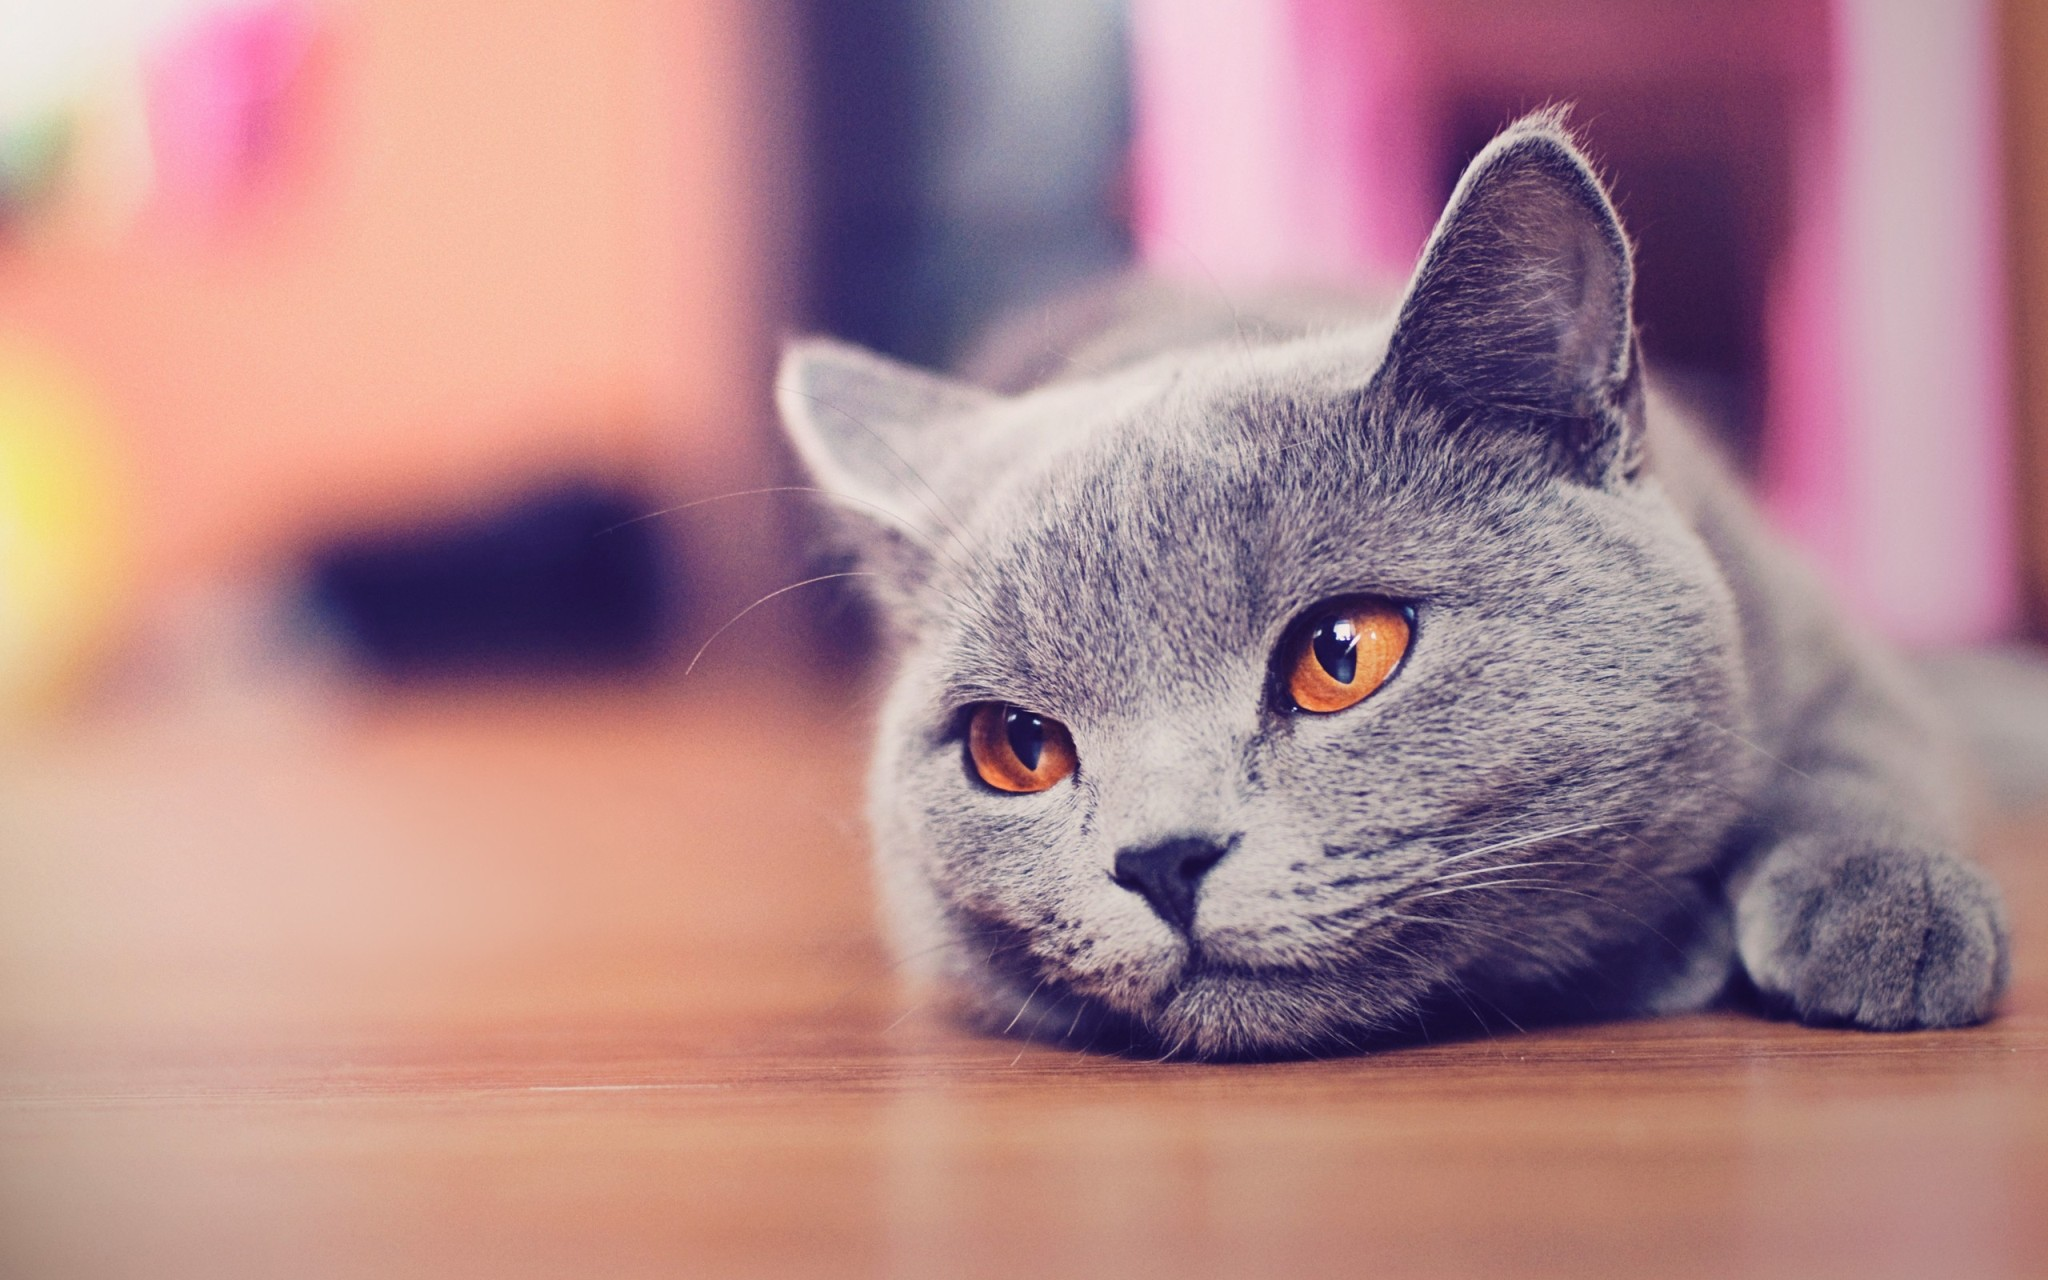 hd cat wallpapers iphone